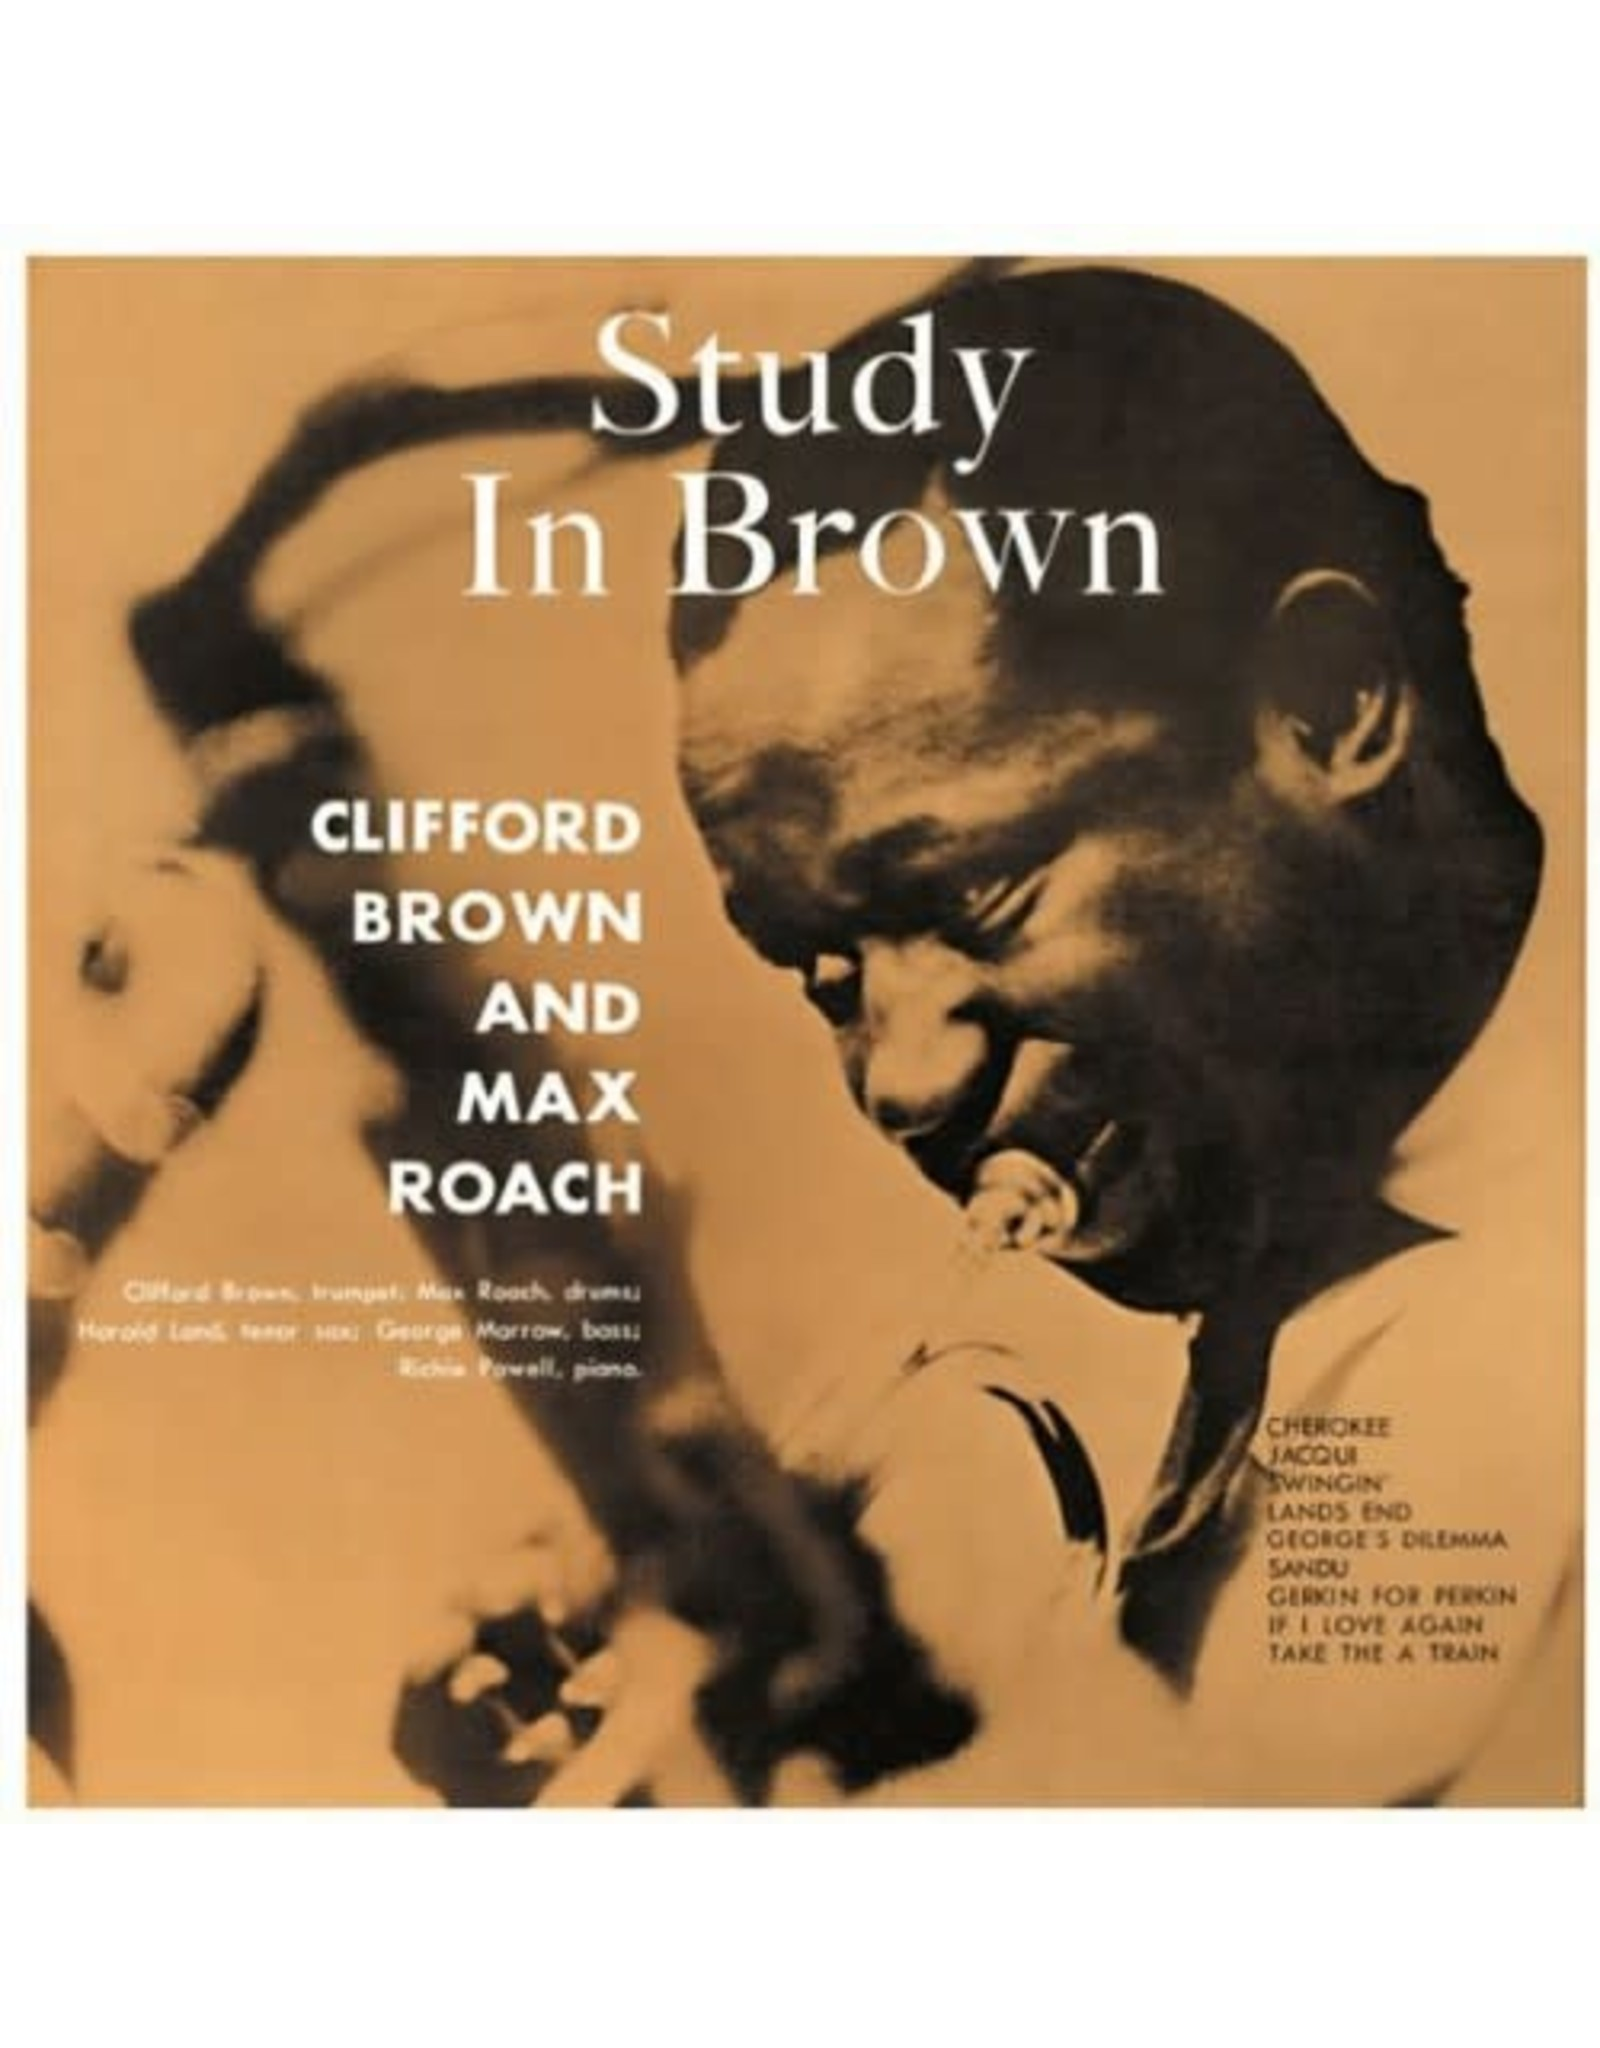 New Vinyl Clifford Brown & Max Roach - Study In Brown LP